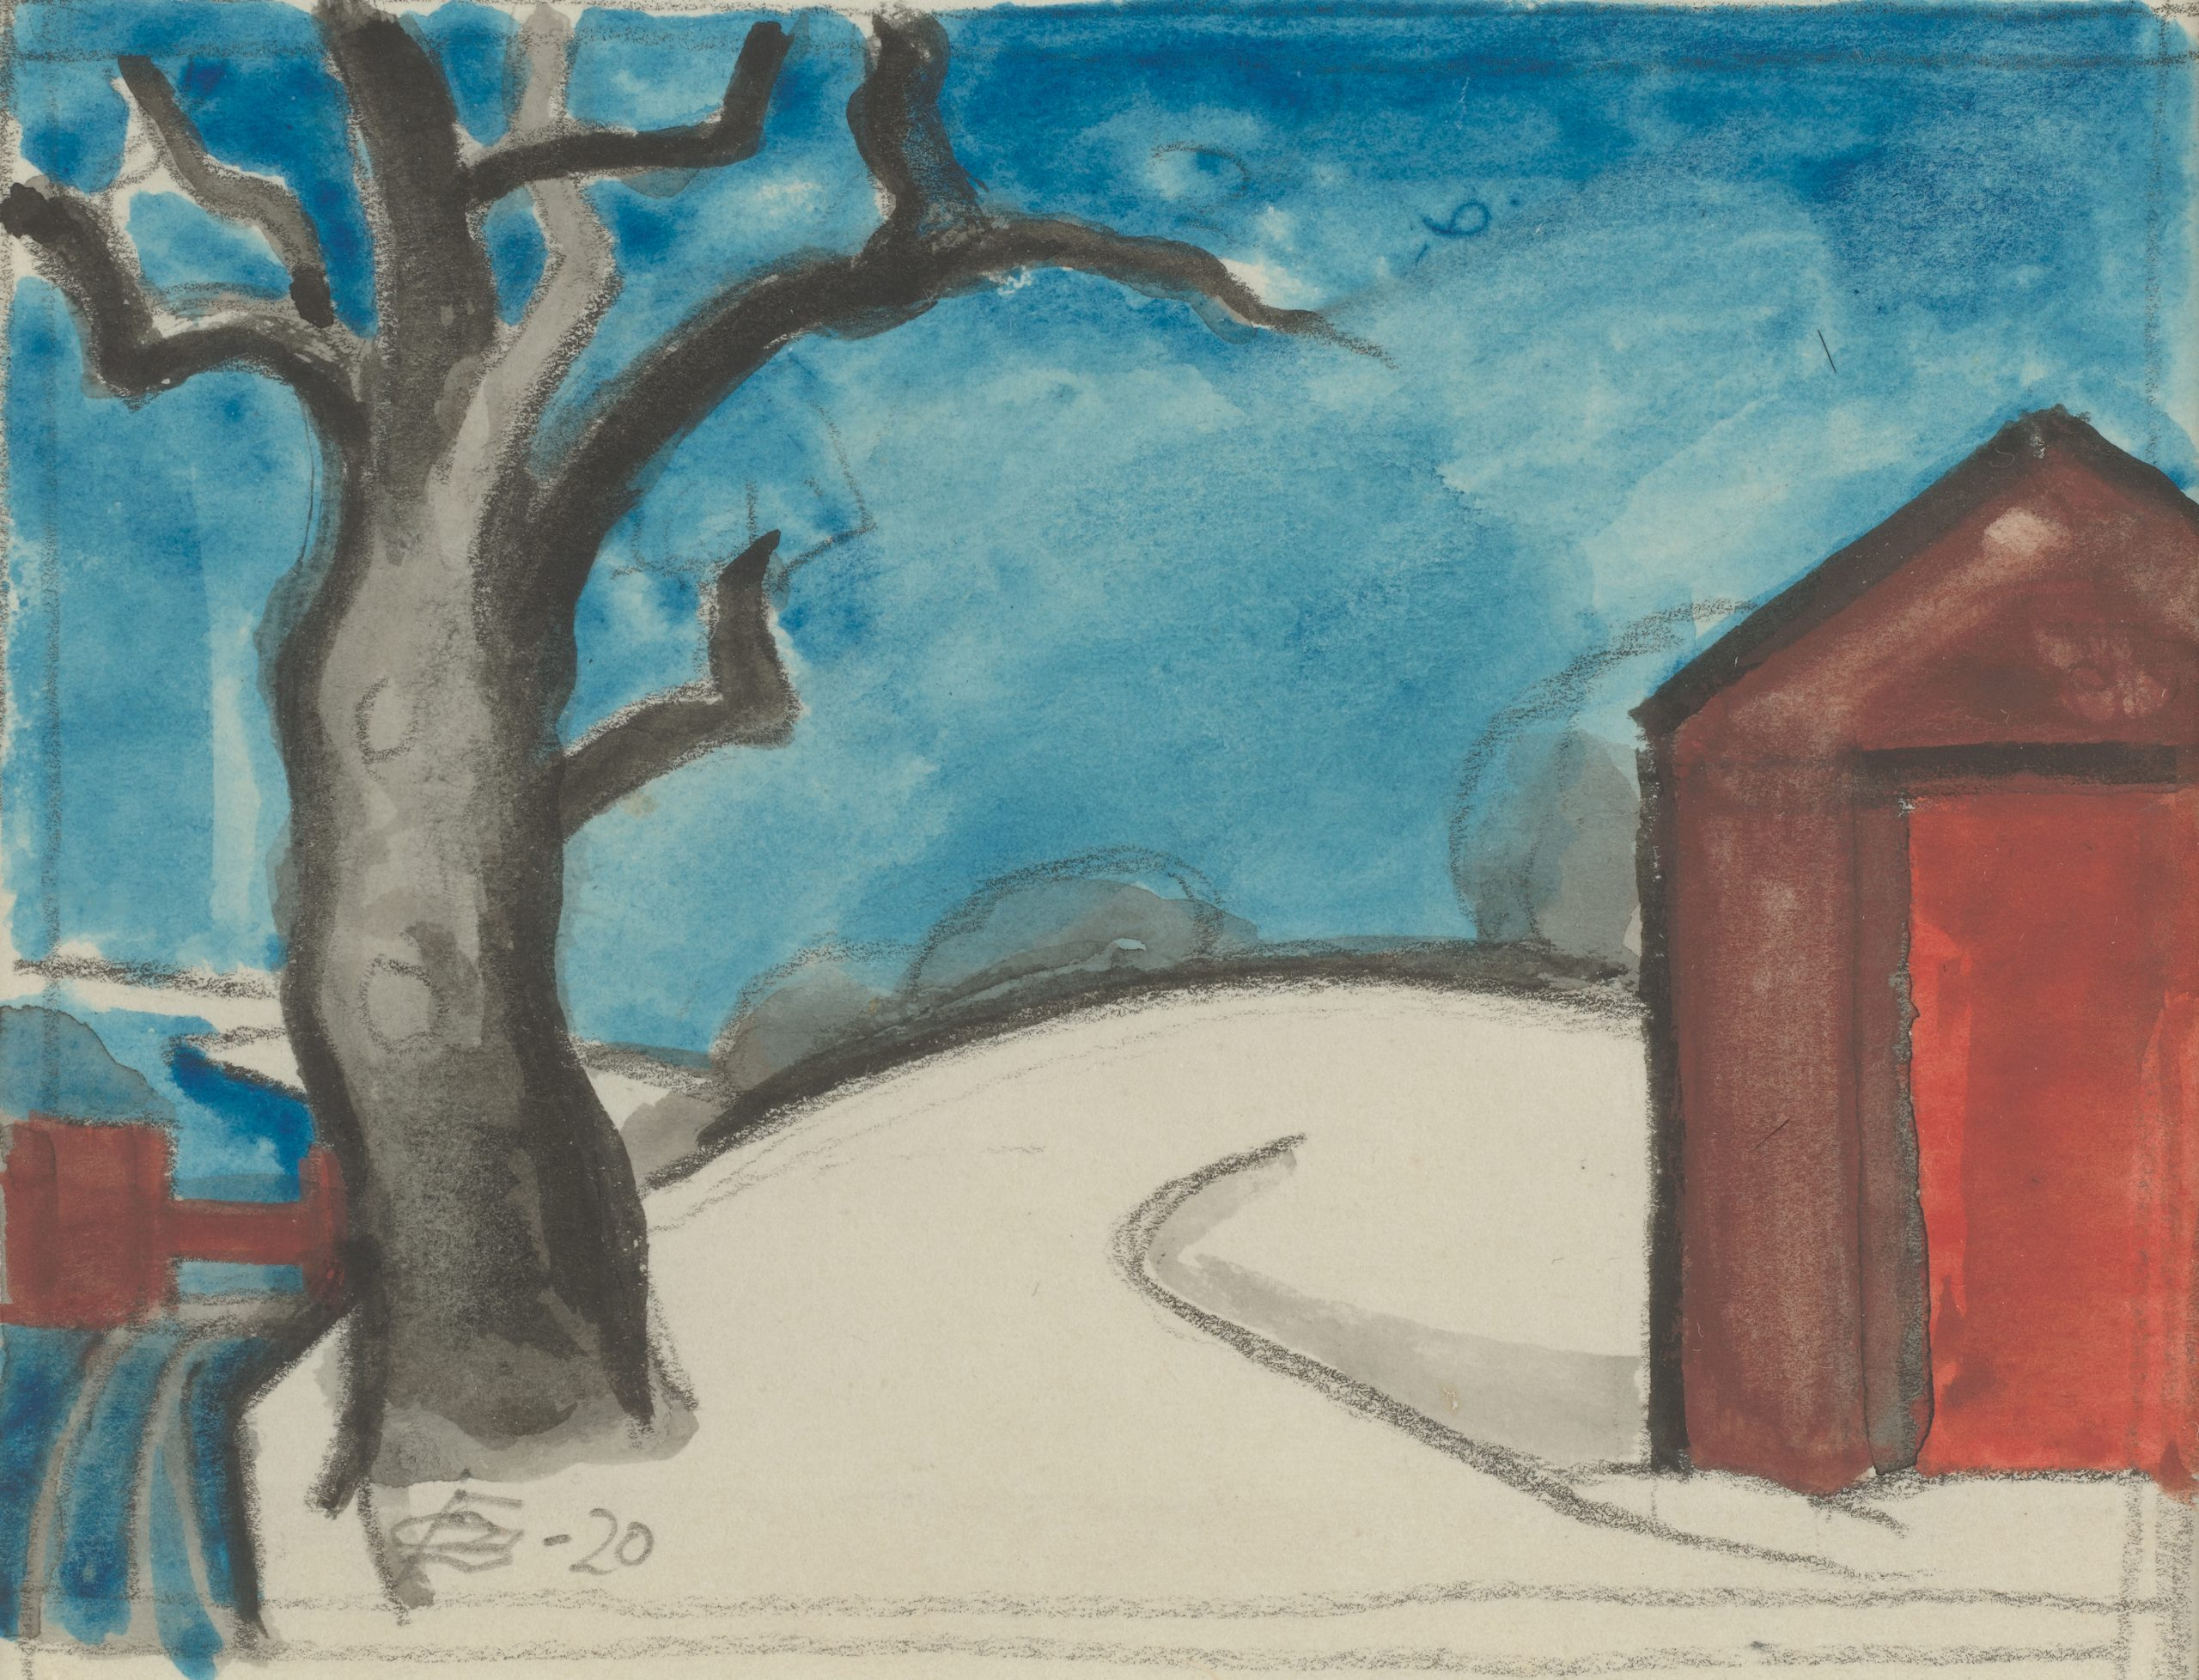 Landscape of a red house and a barren tree under a bright blue sky.